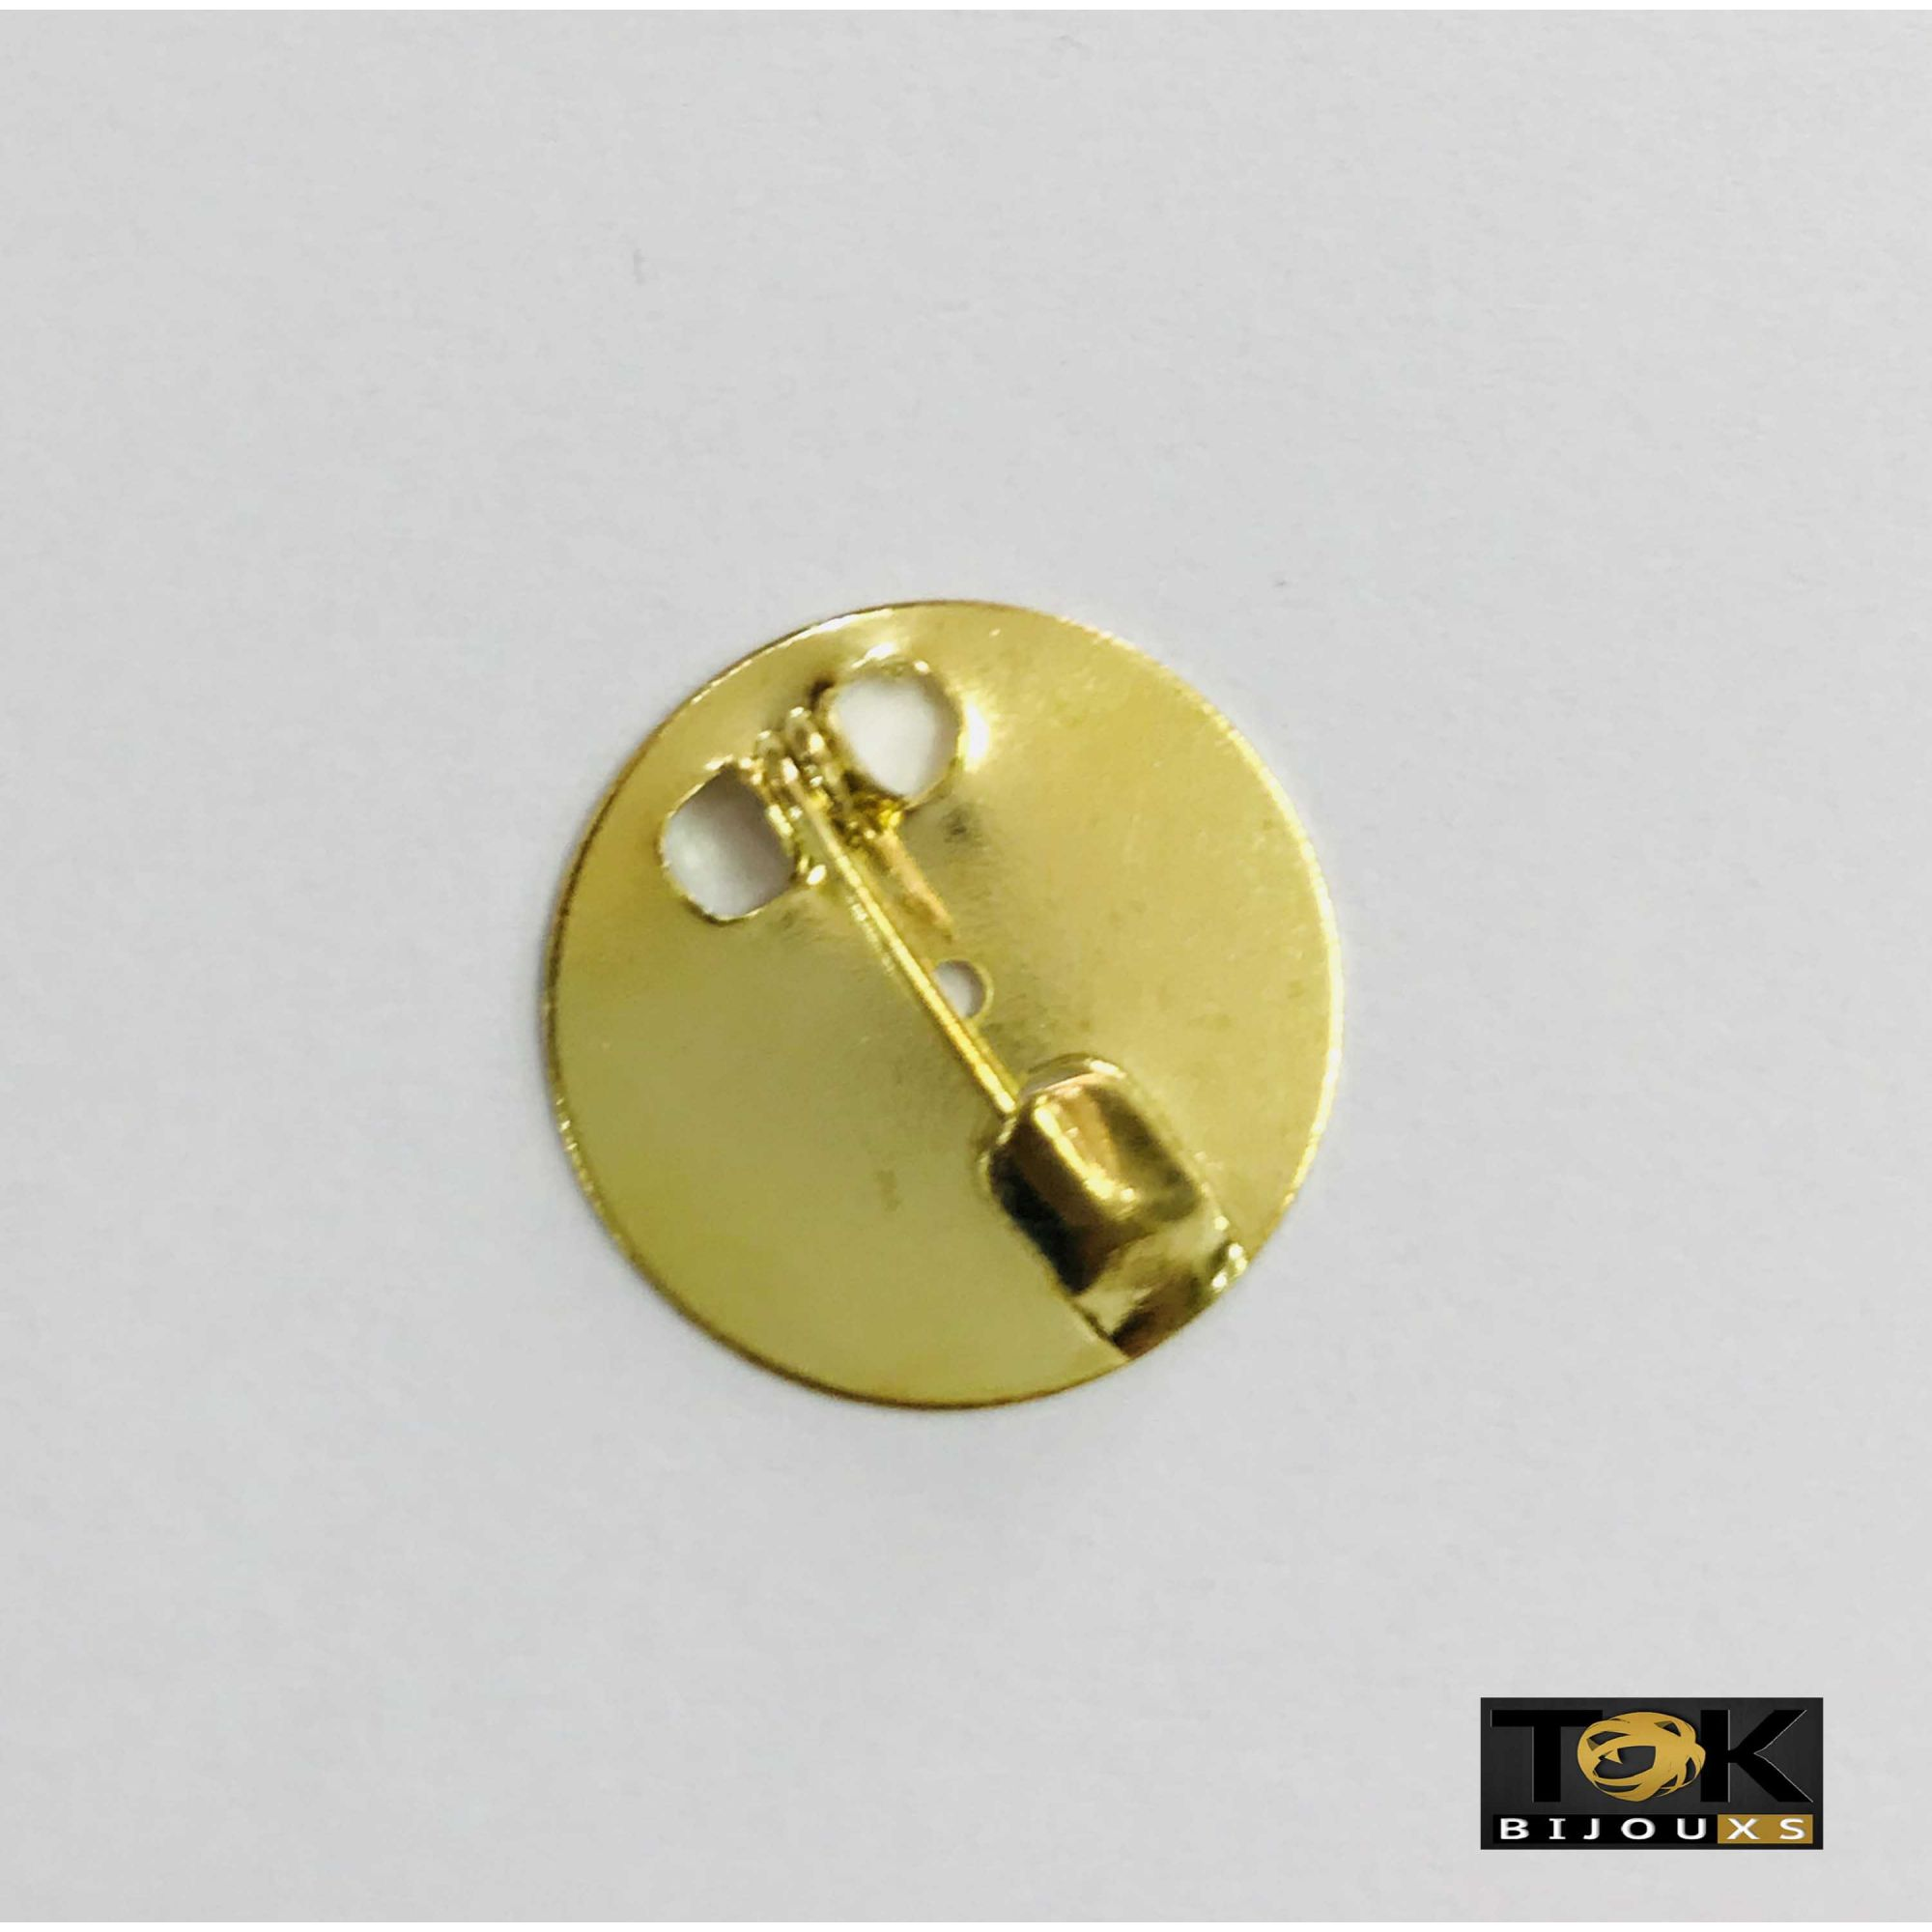 Base De Broche Redonda - Dourado - 20mm - 25 Unid